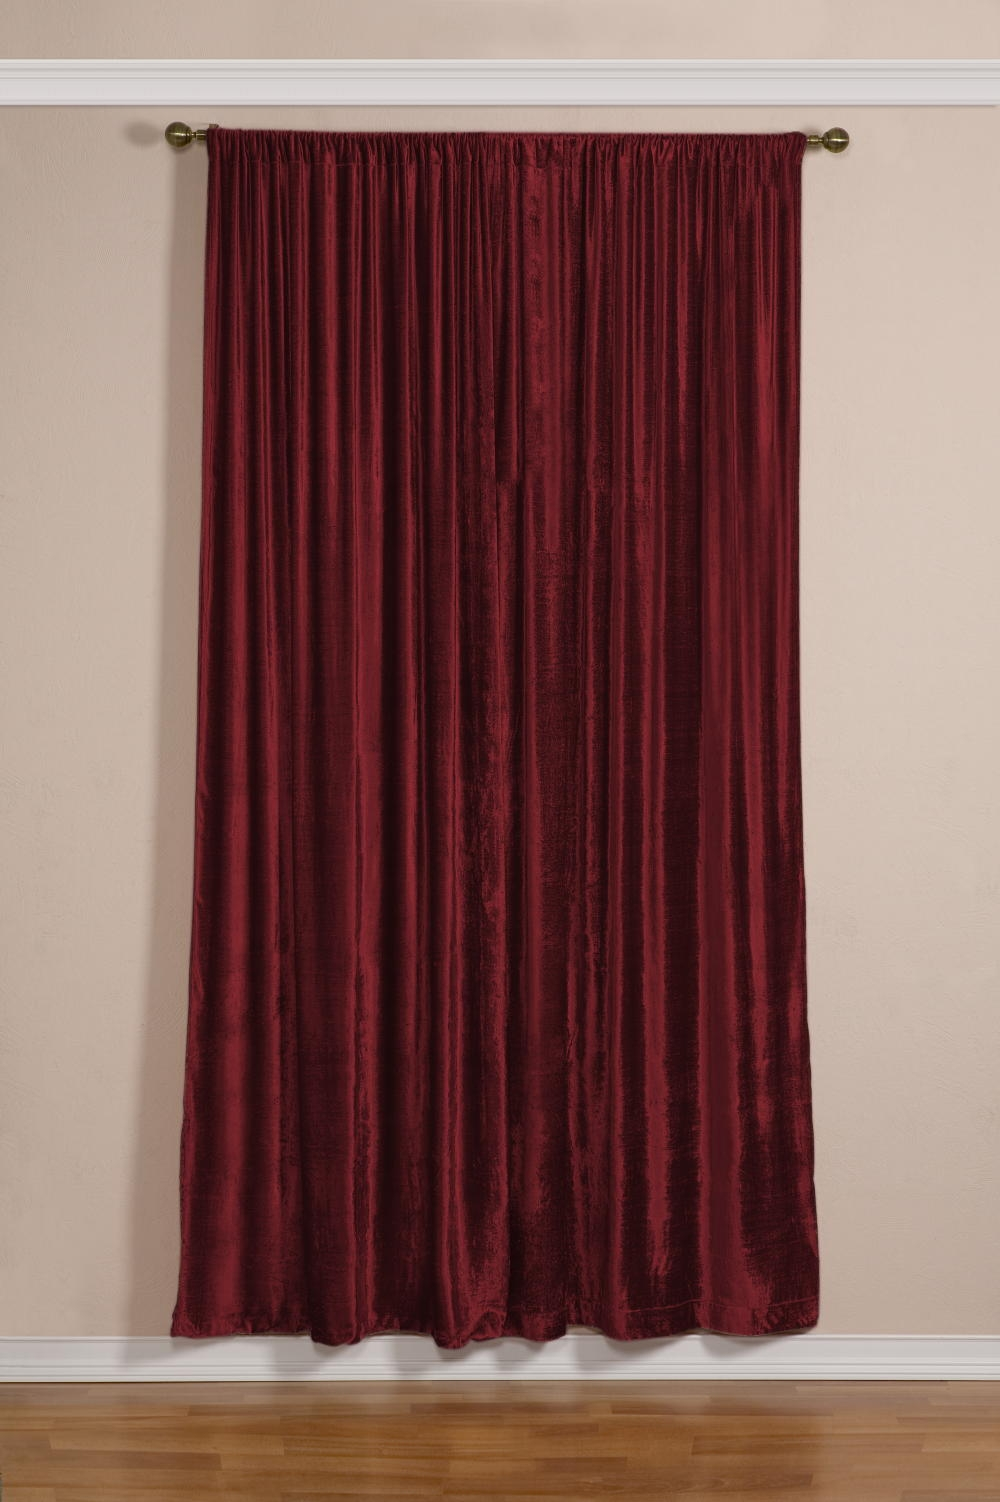 Taupe Velvet Curtains Mobiion With Regard To Velveteen Curtains (View 10 of 15)